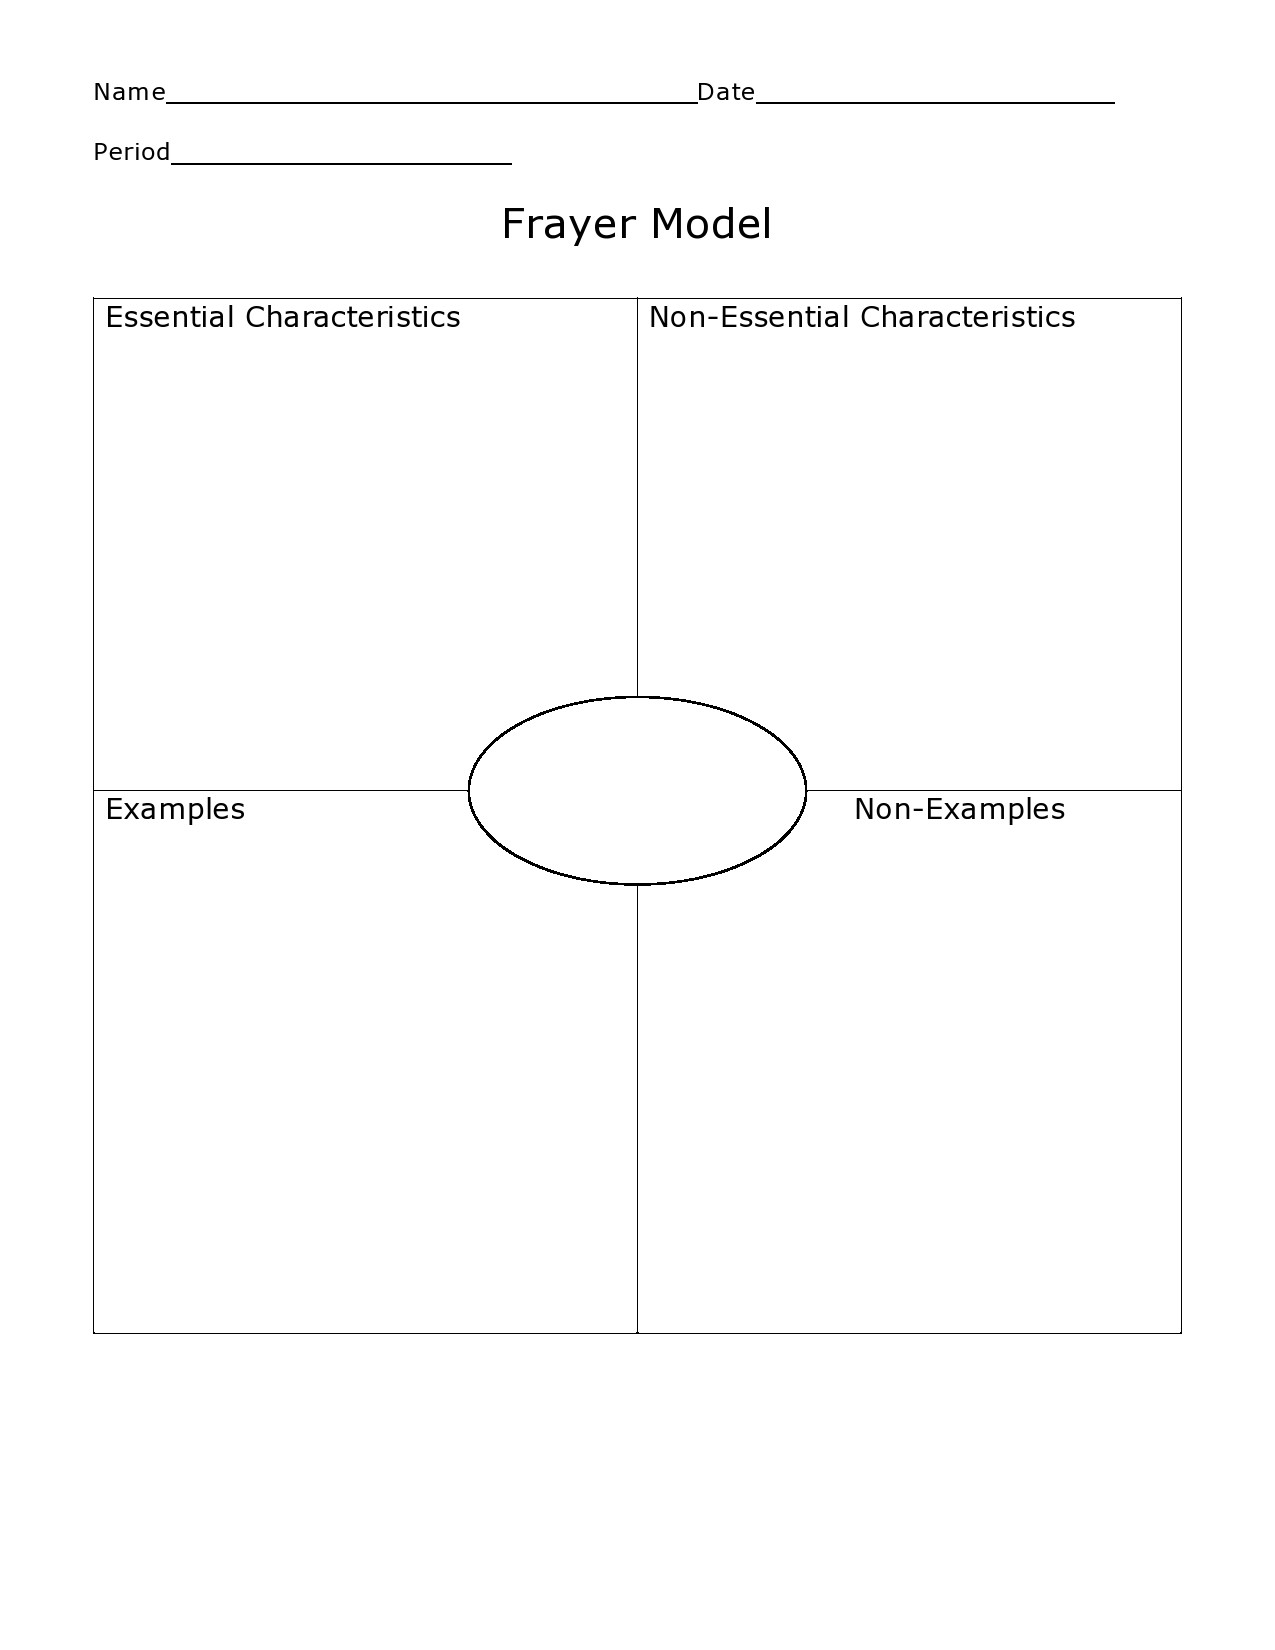 Free frayer model template 20